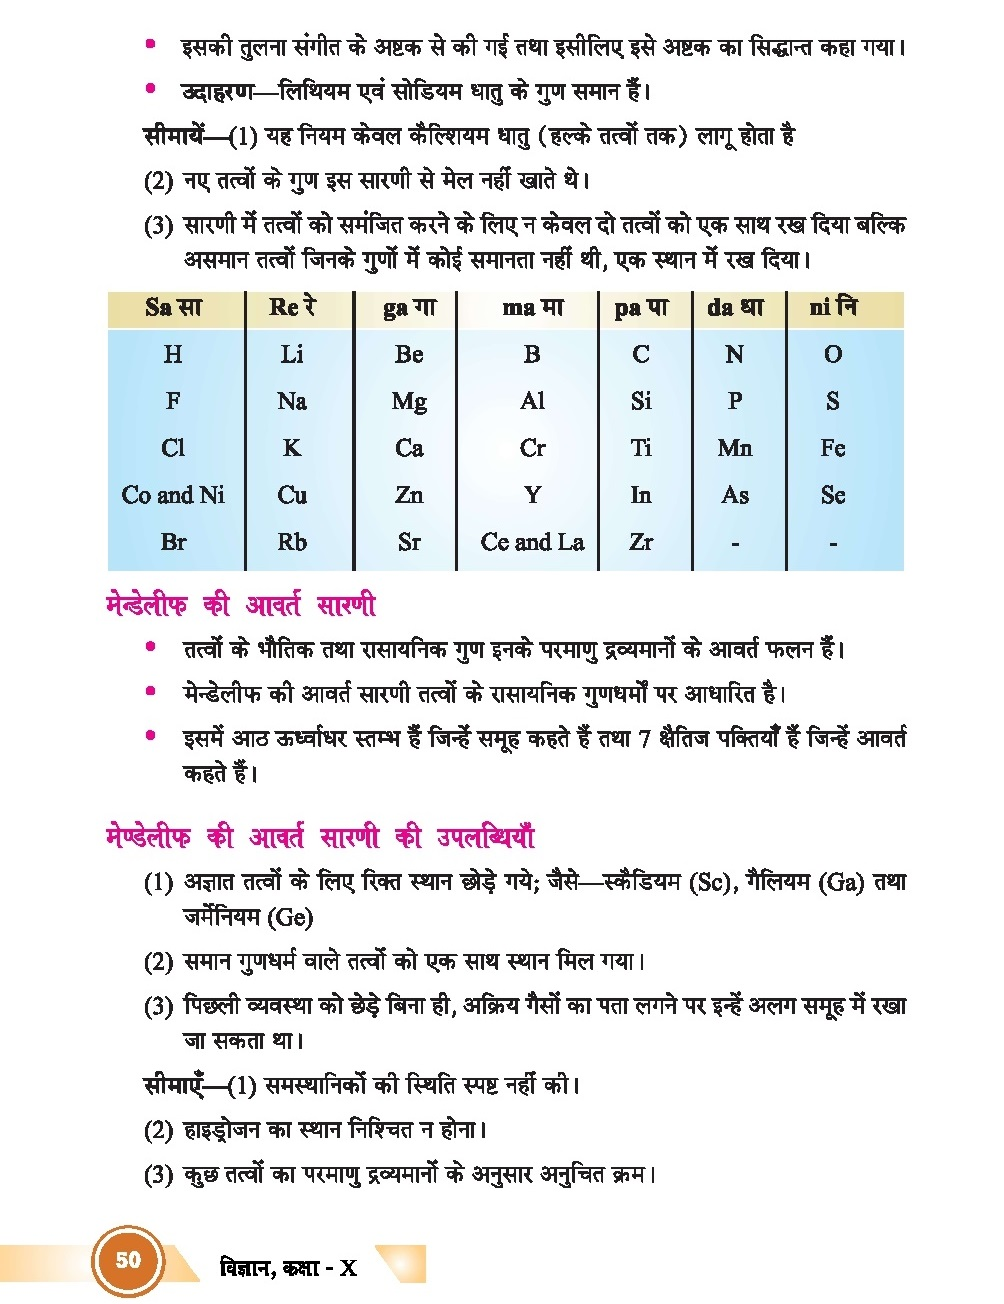 NCERT Solutions for Class 10 Science Chapter 5